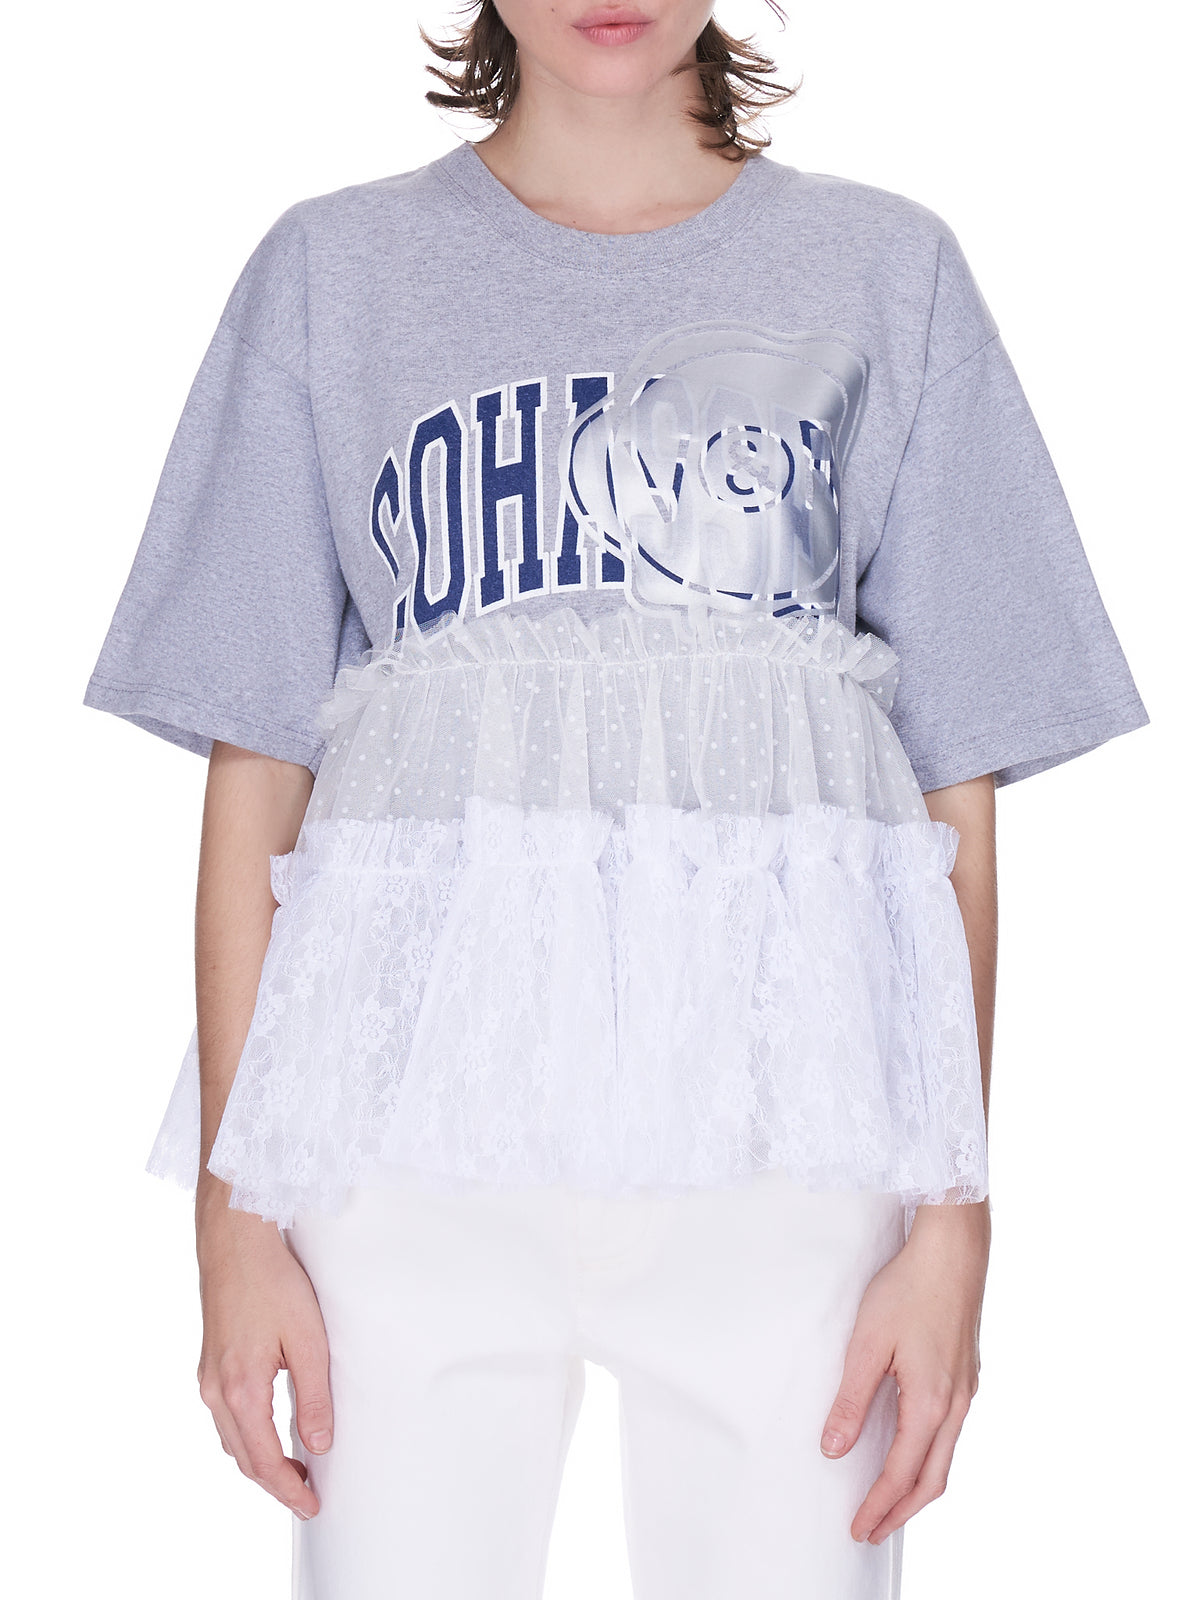 Re-Ruffled Tutu Top (T001AX-GREY-COHASSET)